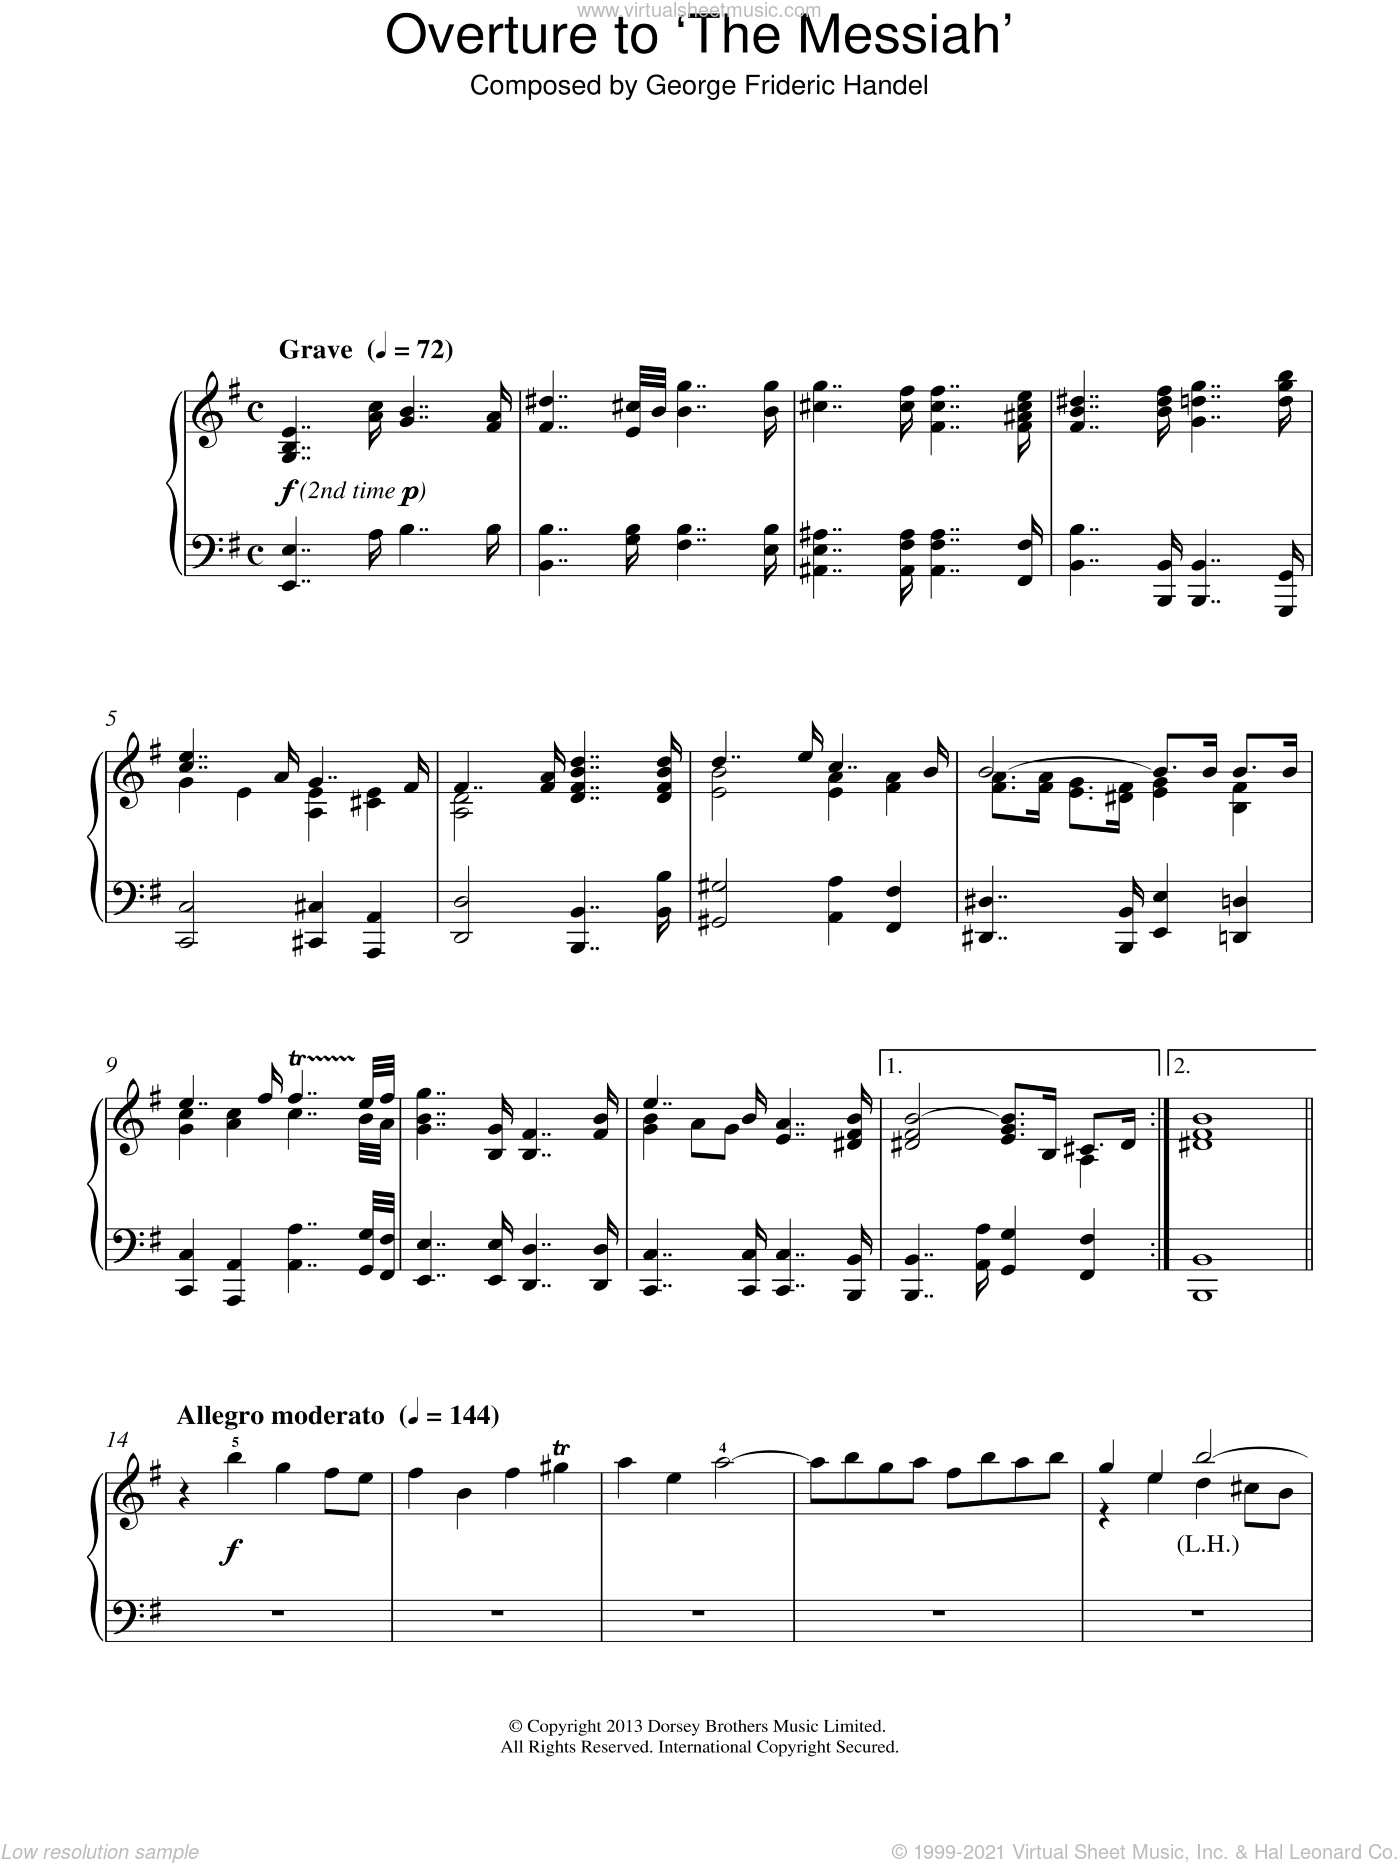 Overture to 'The Messiah' sheet music for piano solo by George Frideric Handel